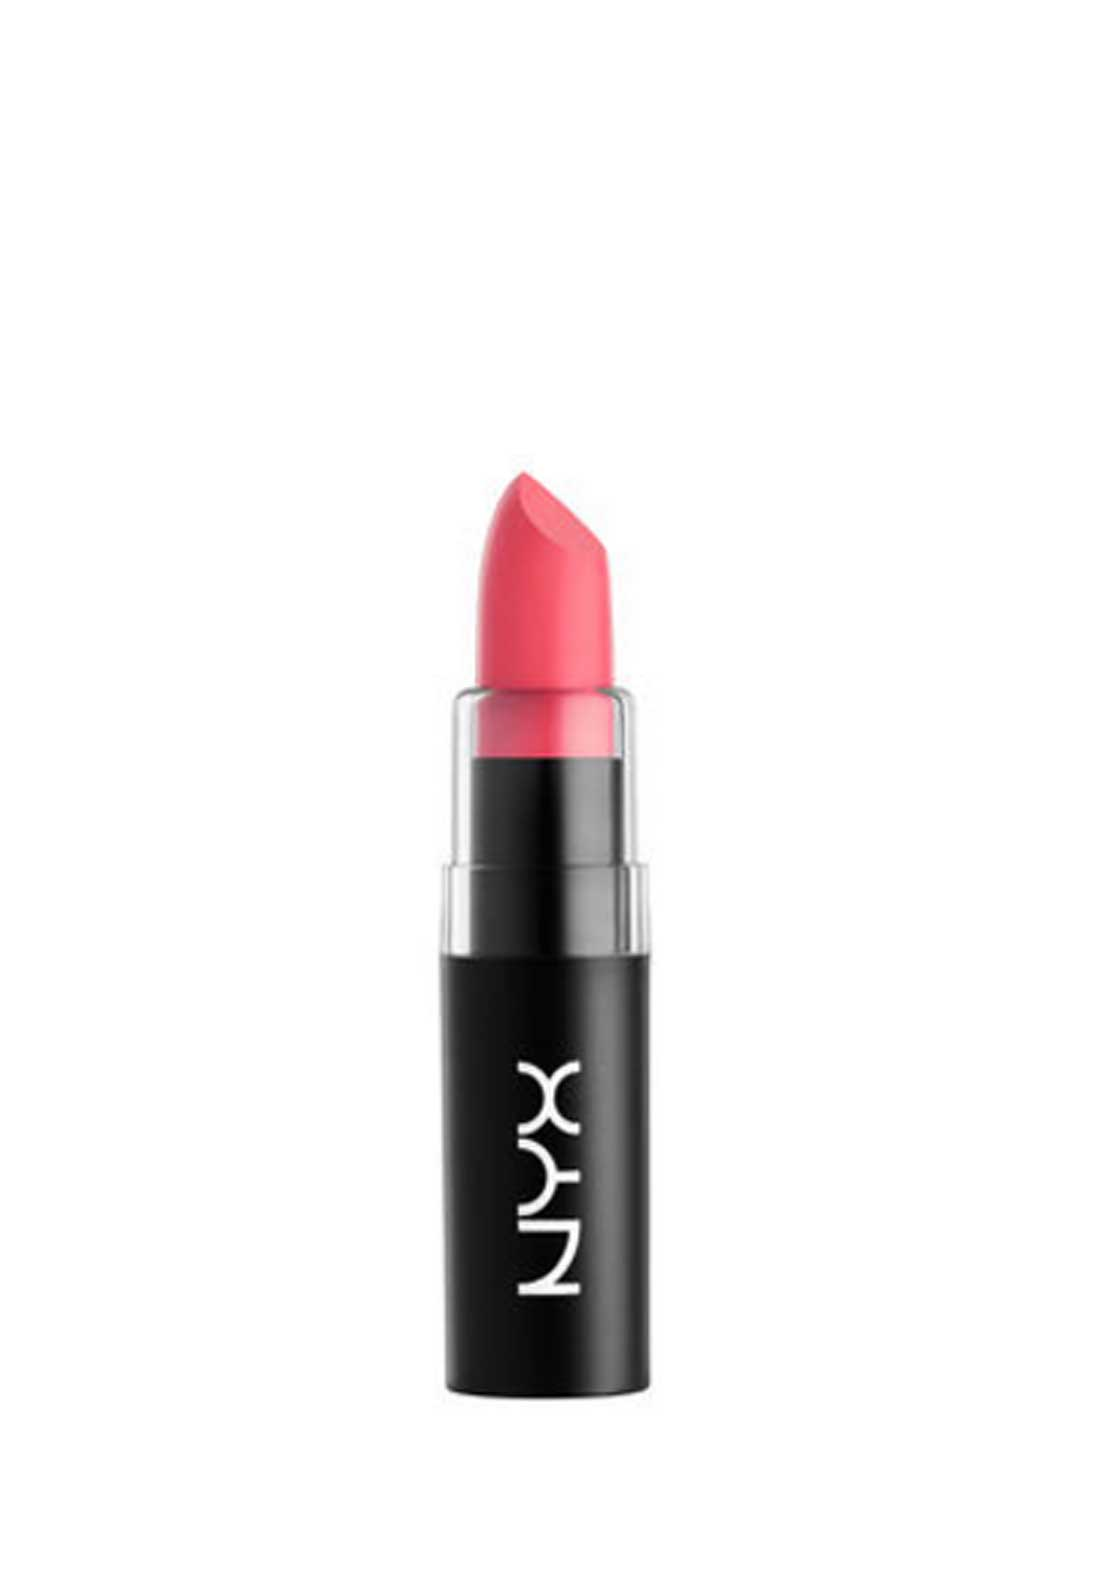 NYX Make Up Matte Lipstick, 13 Angel